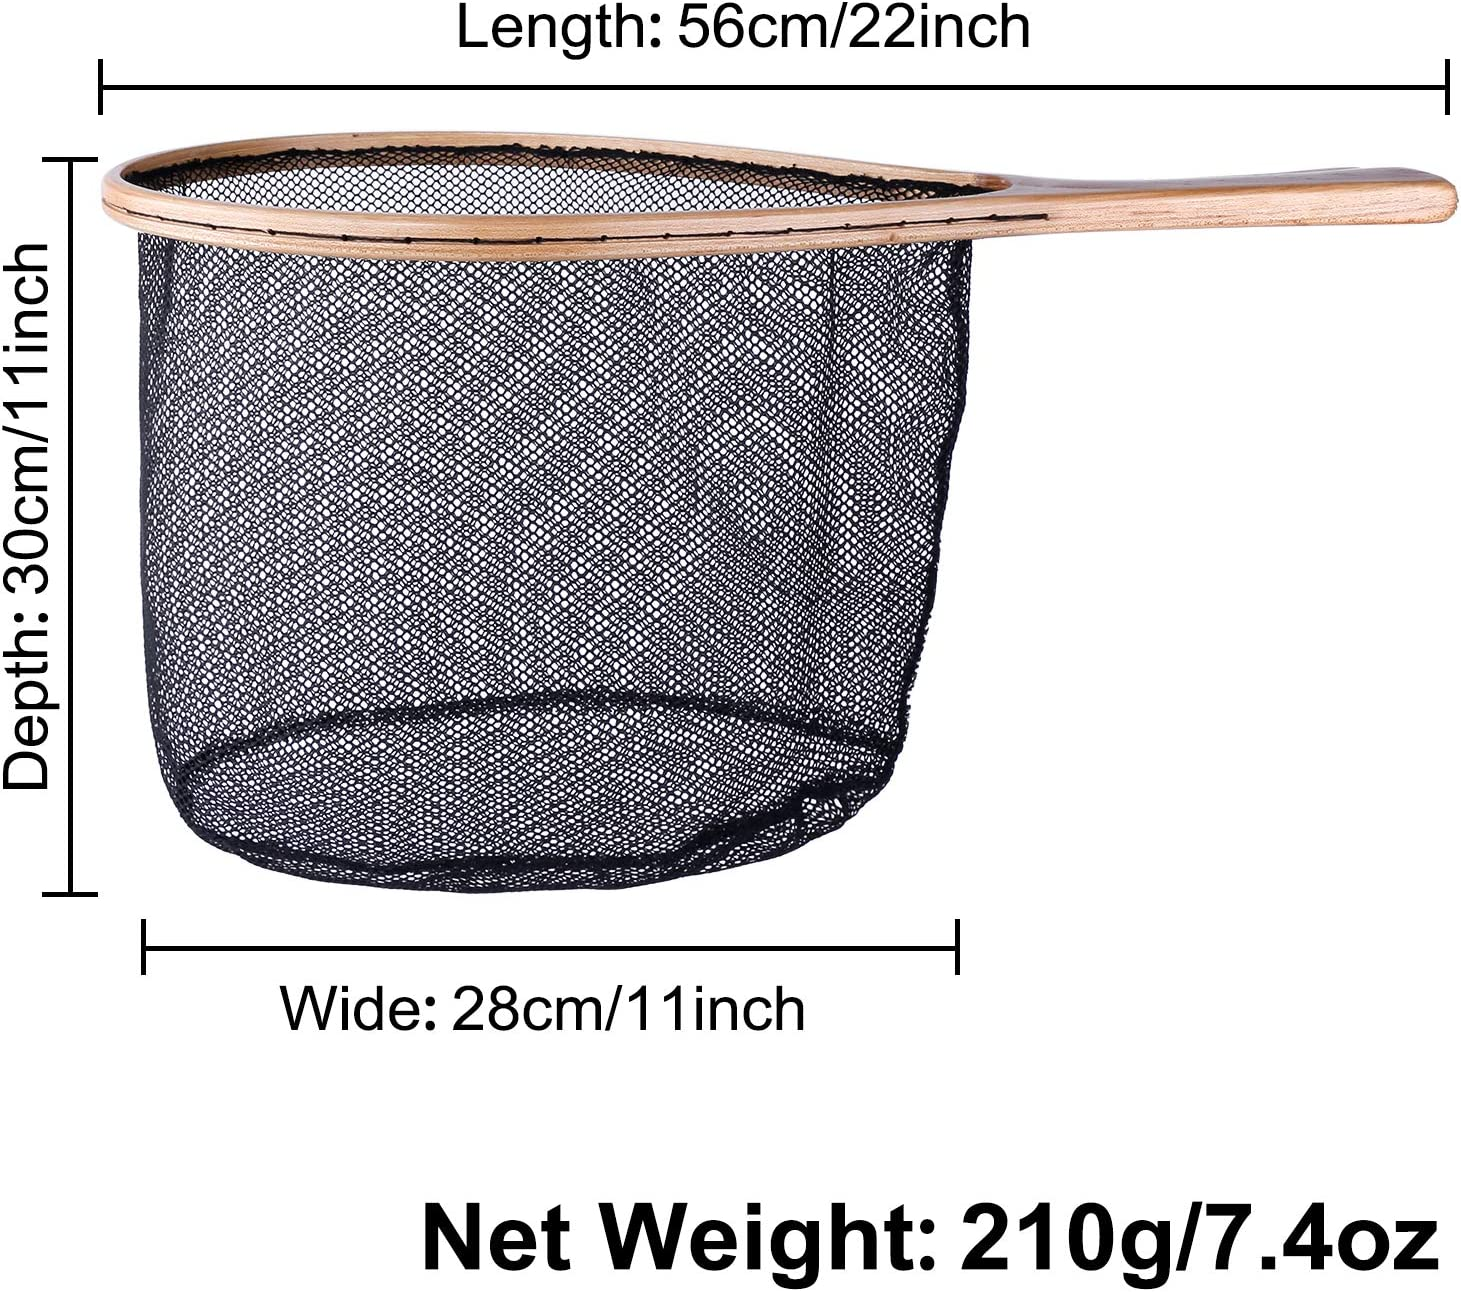 Magnetic Fly Fishing Gear Wooden Frame Fishing Landing Net with Magnetic Release PLUSINNO Fly Fishing Net Soft Rubber Mesh Net for Trout Bass Catch and Release